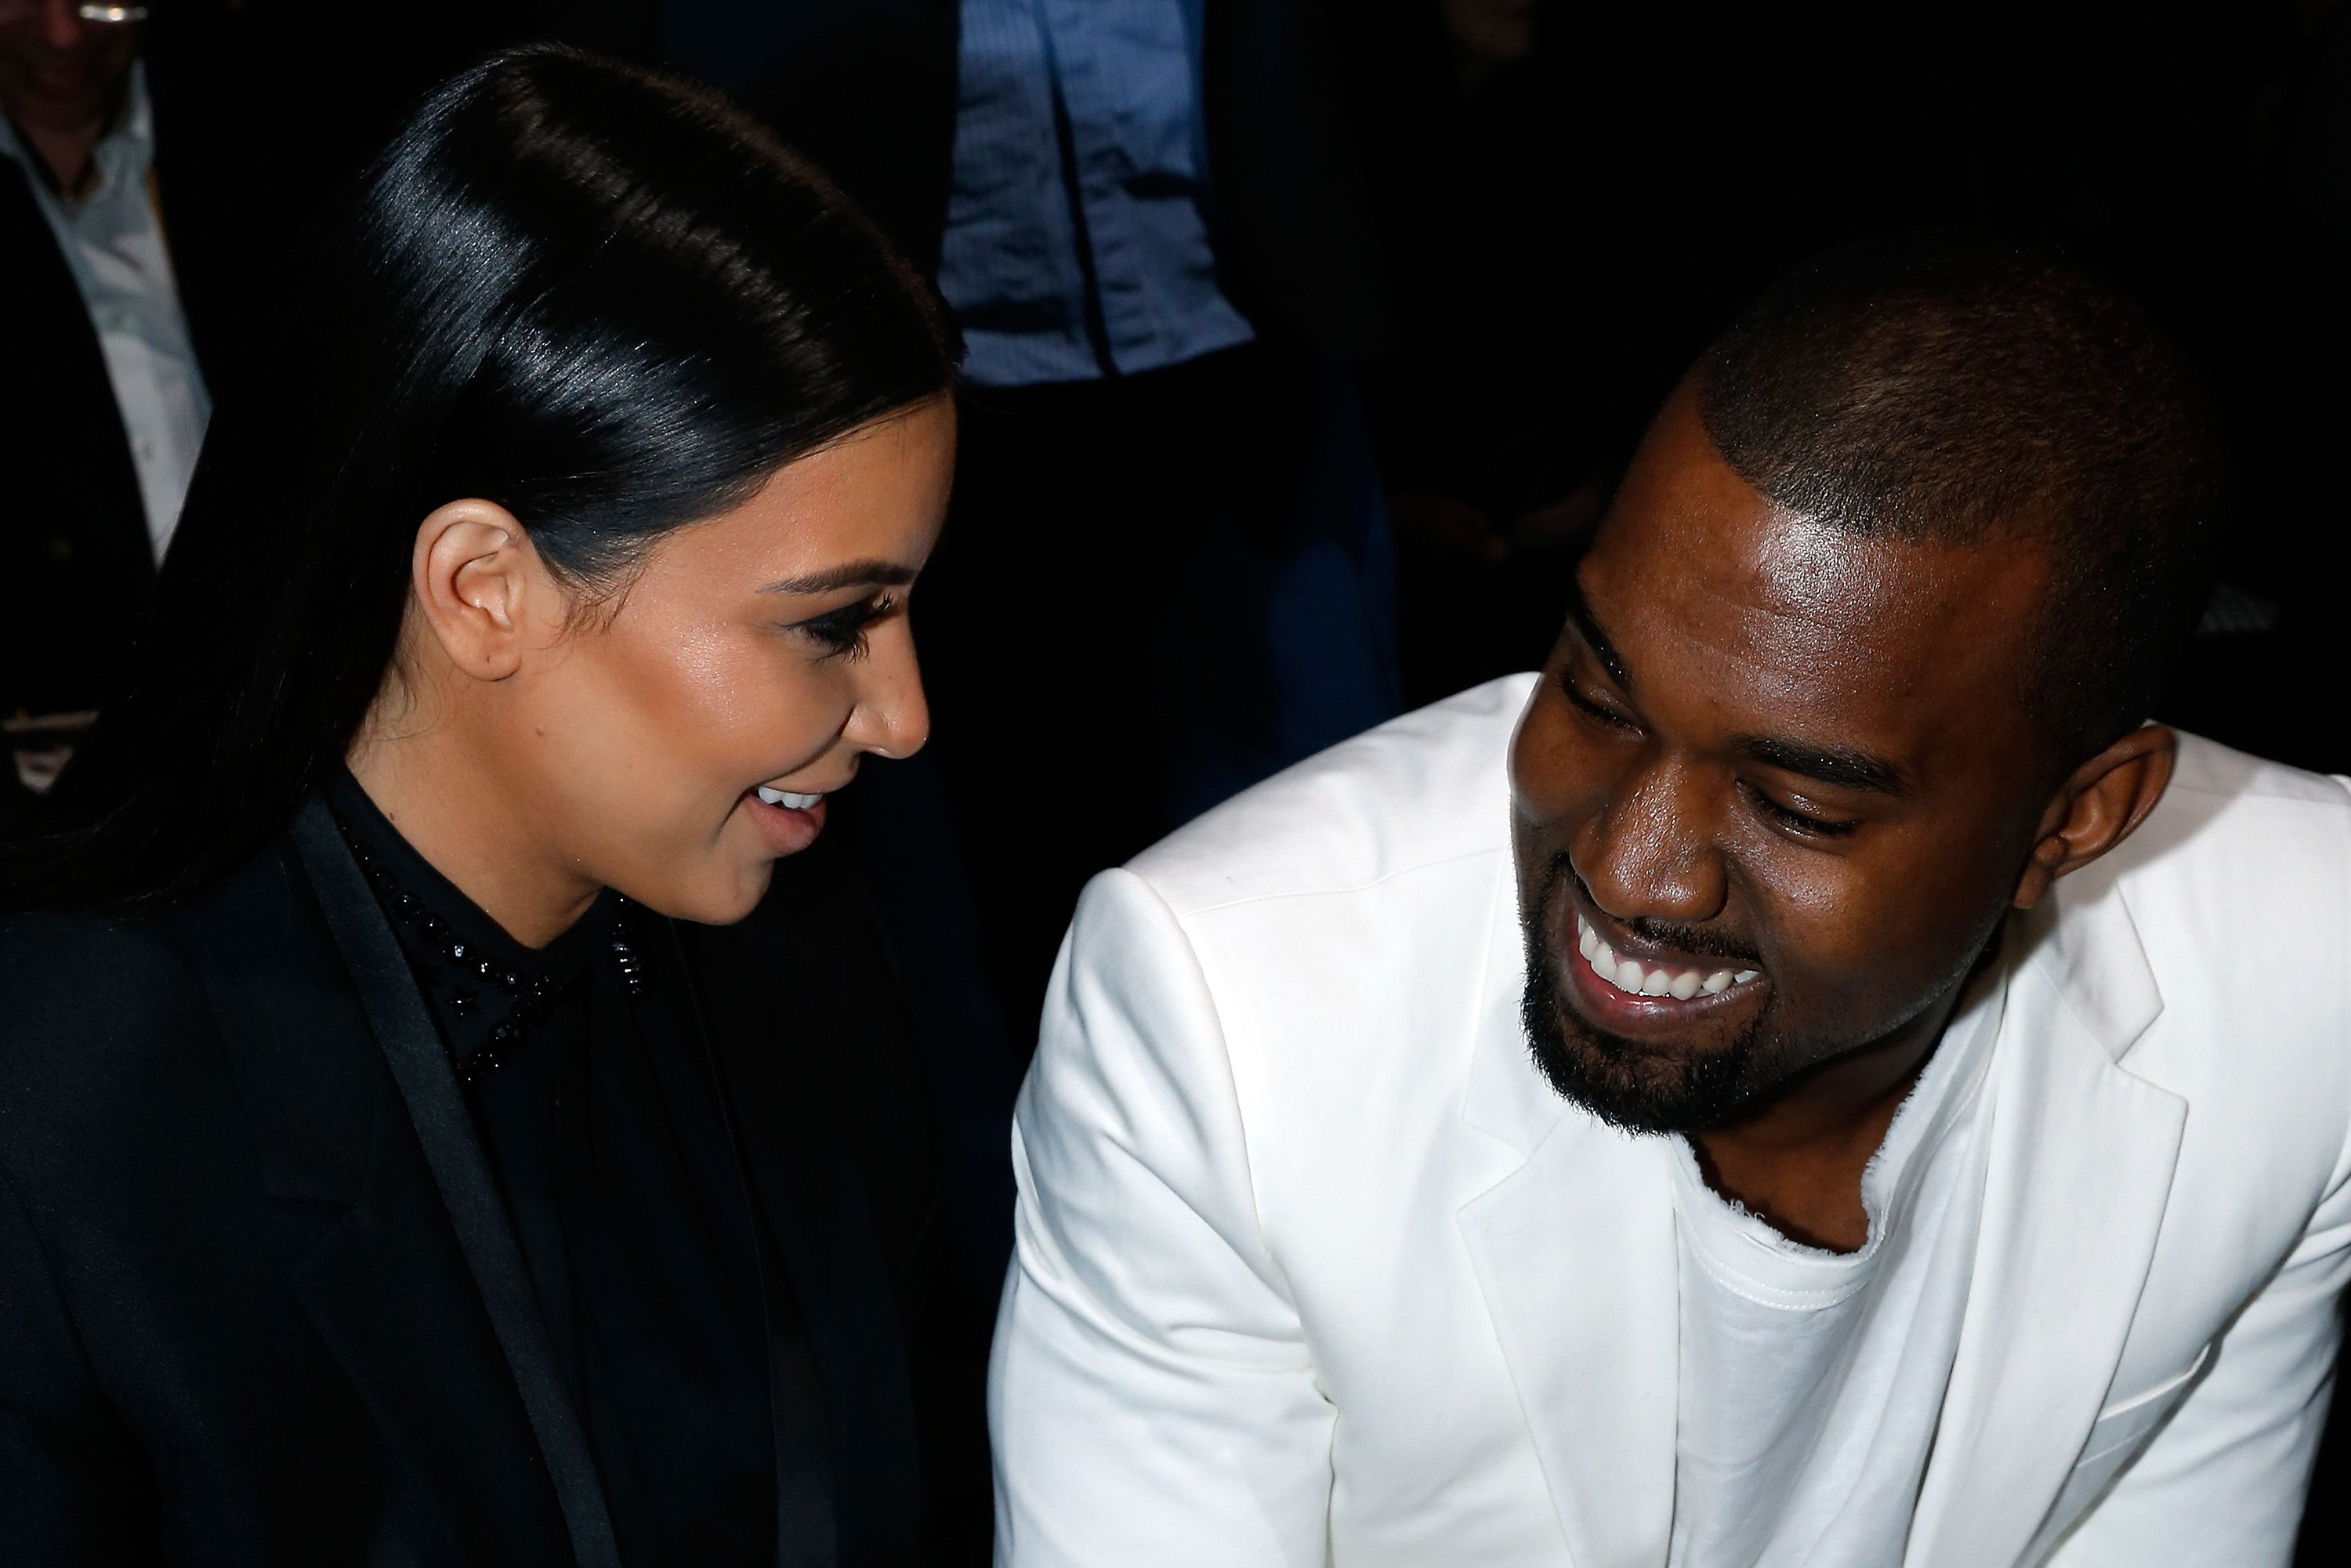 A Complete Guide to Kanye West Smiling in the FrontRow